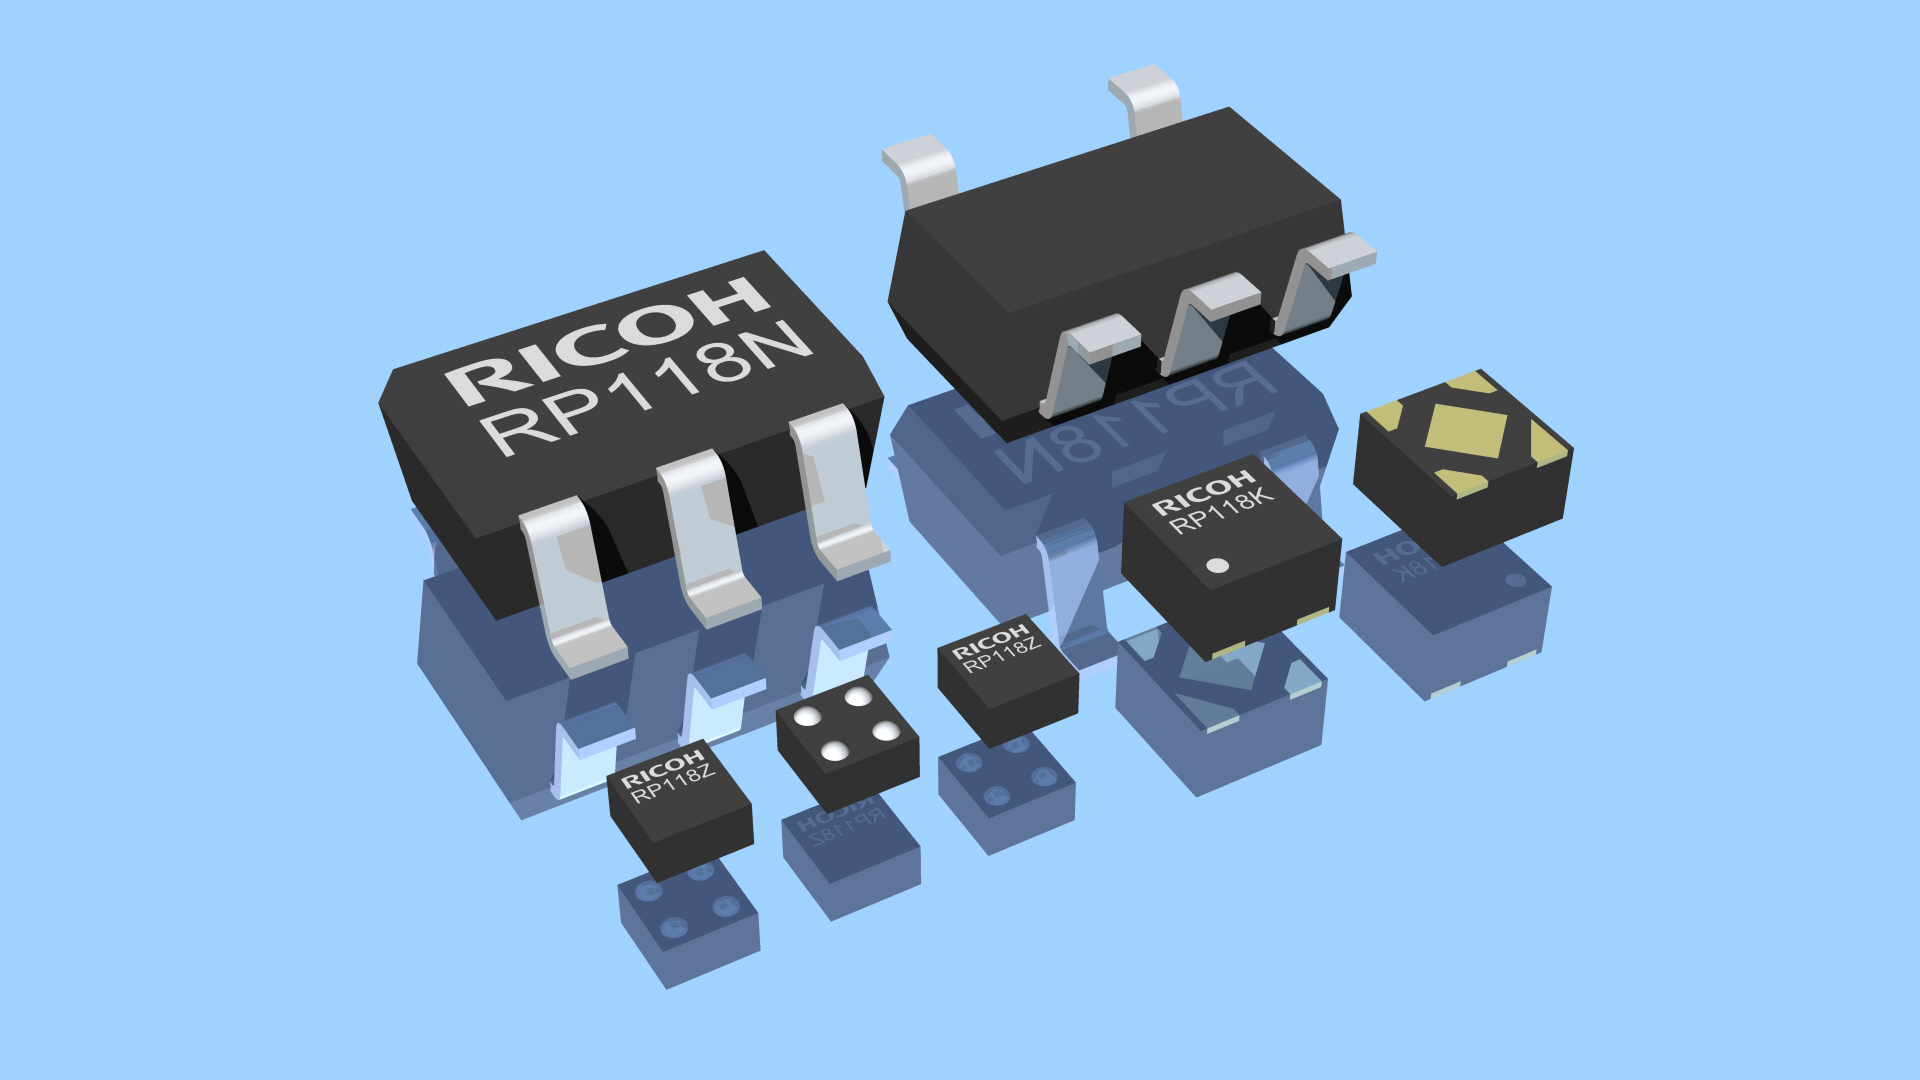 Ultralow Ldo Regulator From Ricoh Line One Sales The Device Switches Automatically Between Low Power Consumption Mode And Fast Transient Response Based On Output Current Demand Of